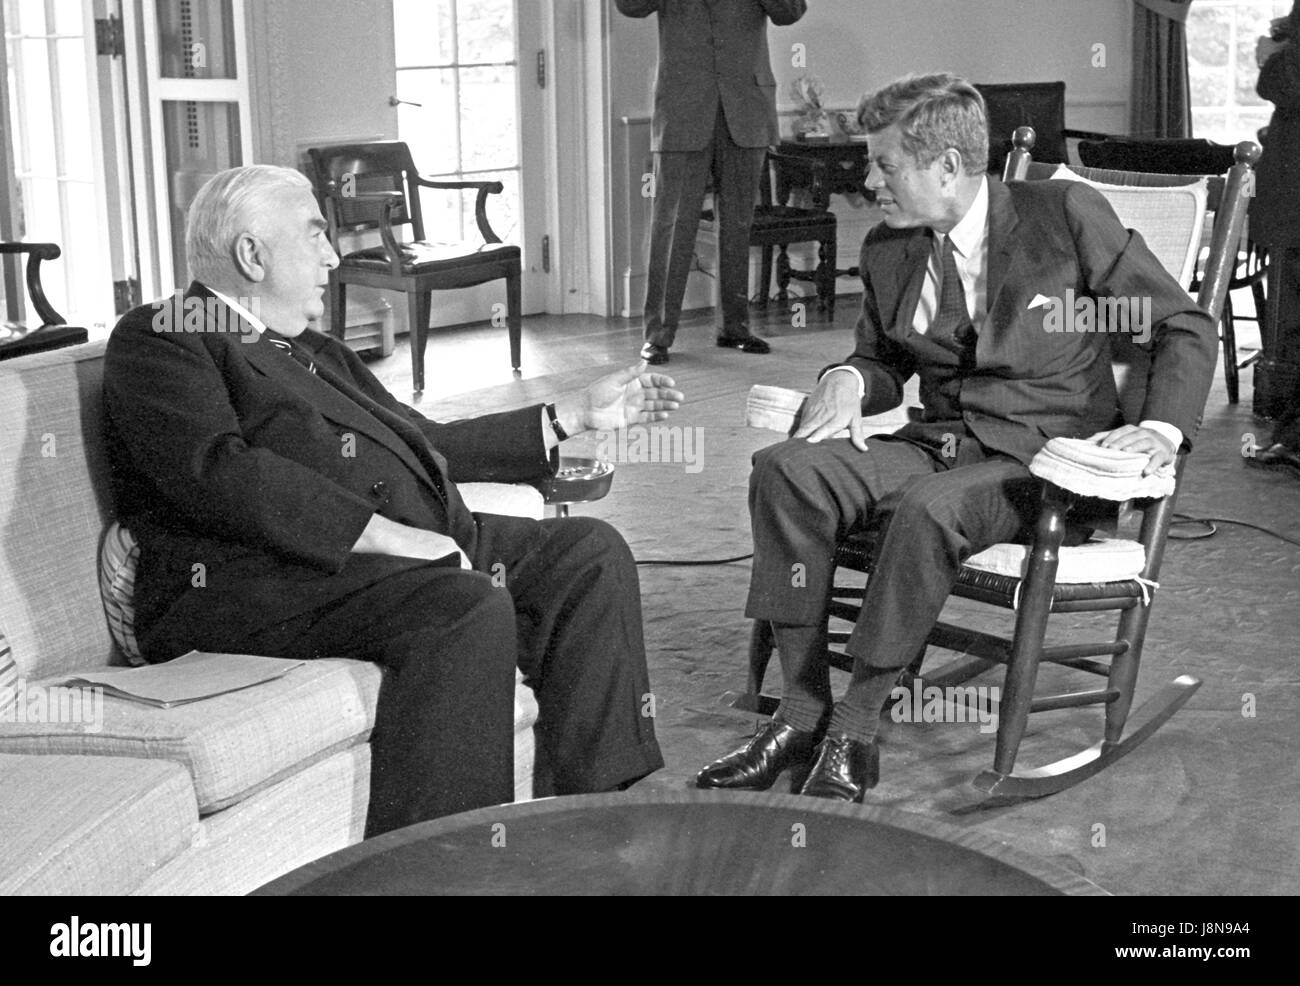 jfk in oval office. United States President John F. Kennedy (in Rocking Chair), Right, Meets With Prime Minister Of Australia Robert G. Menzies, Left, In The Oval Office Jfk D